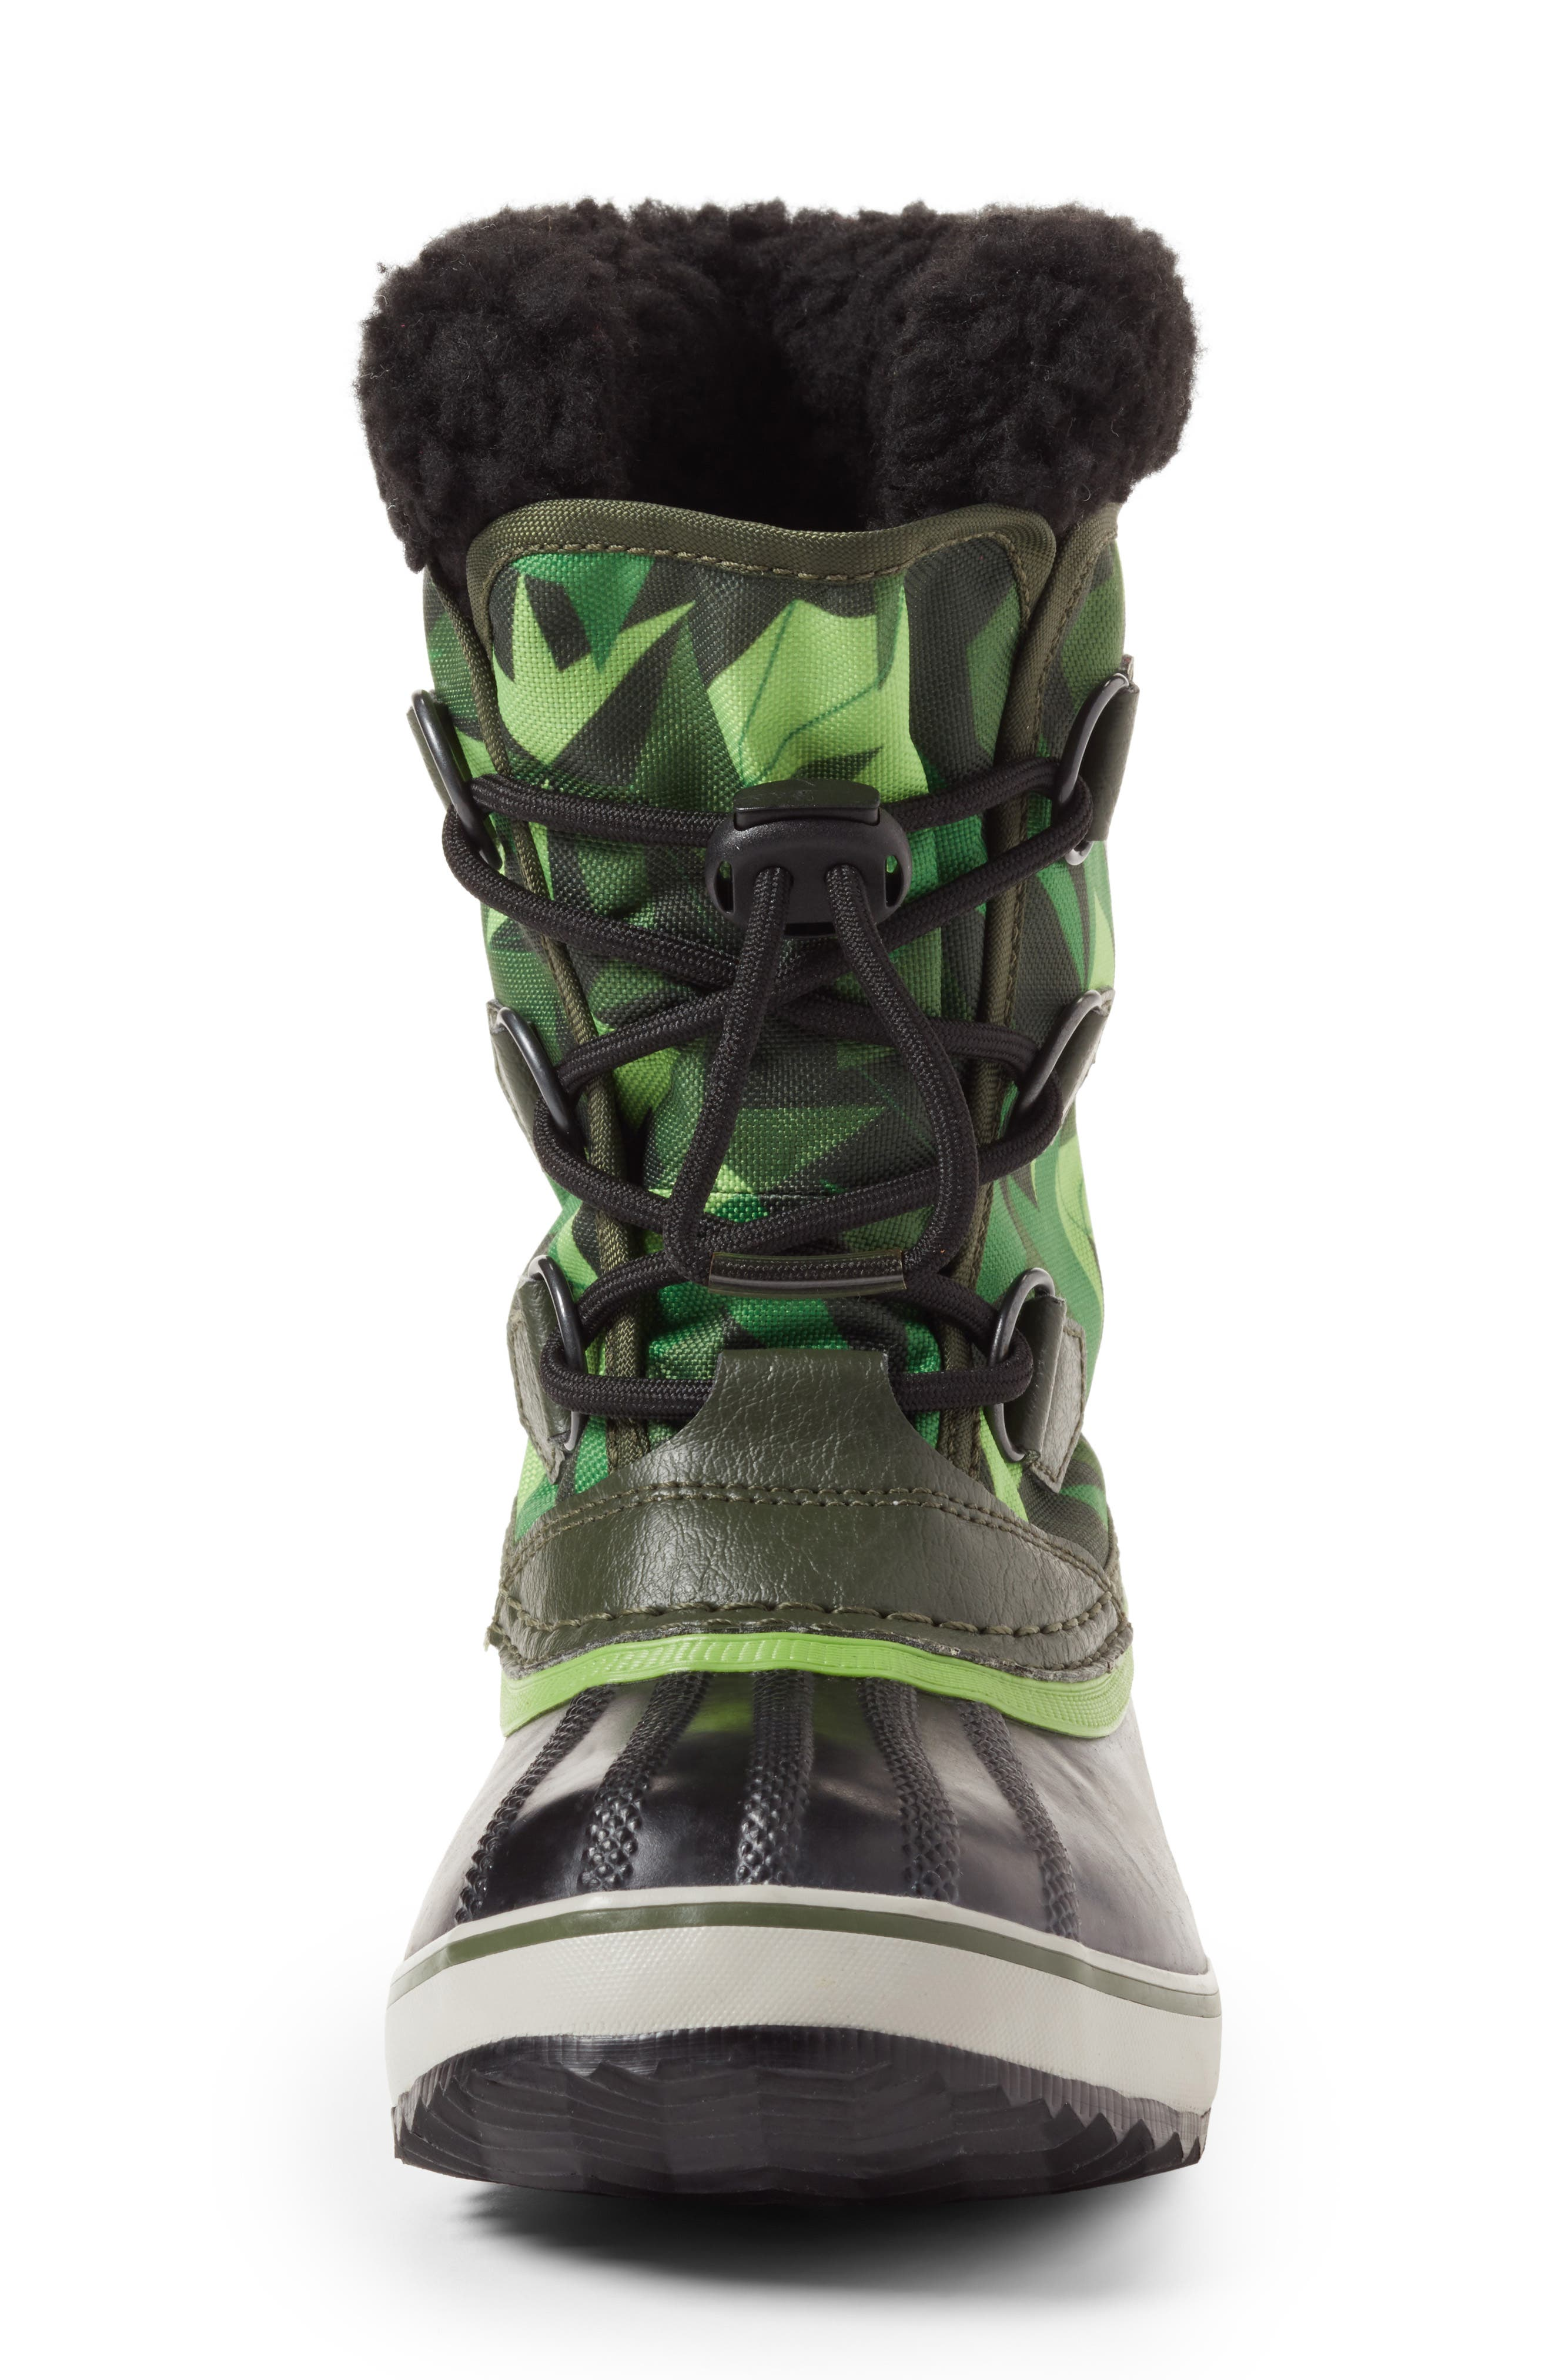 Yoot Pac Waterproof Insulated Snow Boot,                             Alternate thumbnail 5, color,                             Surplus Green/ Green Mamba